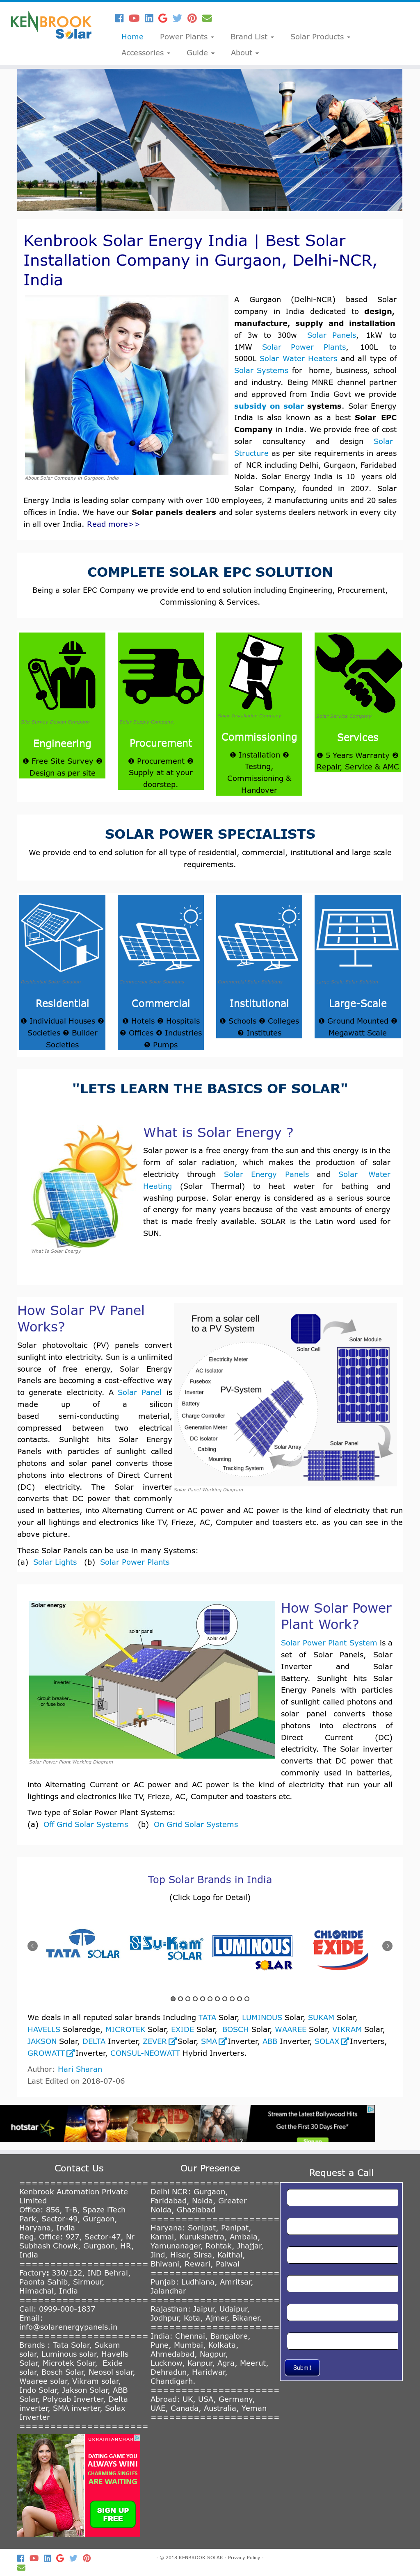 Solar Energy India Competitors Revenue And Employees Owler Epc Fuse Box Website History